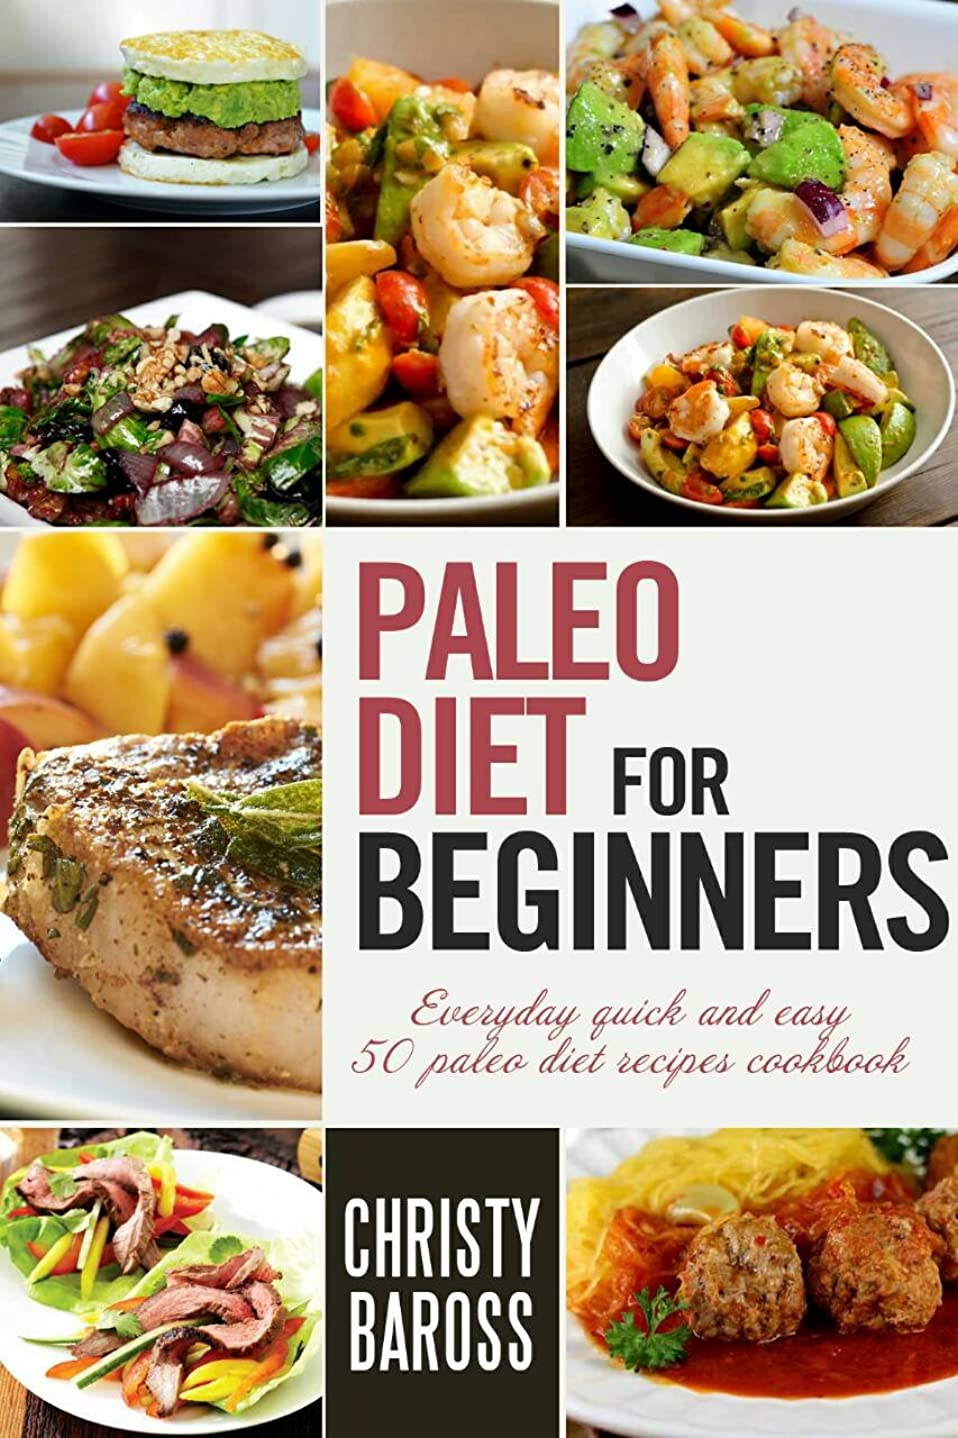 PALEO DIET: for beginners (paleo recipes,paleo,paleo cookbook,mouthwatering paleo recipes,best paleo diet,paleo diet, weight loss, paleo for health, delicious ... quick and easy paleo) (English Edition)